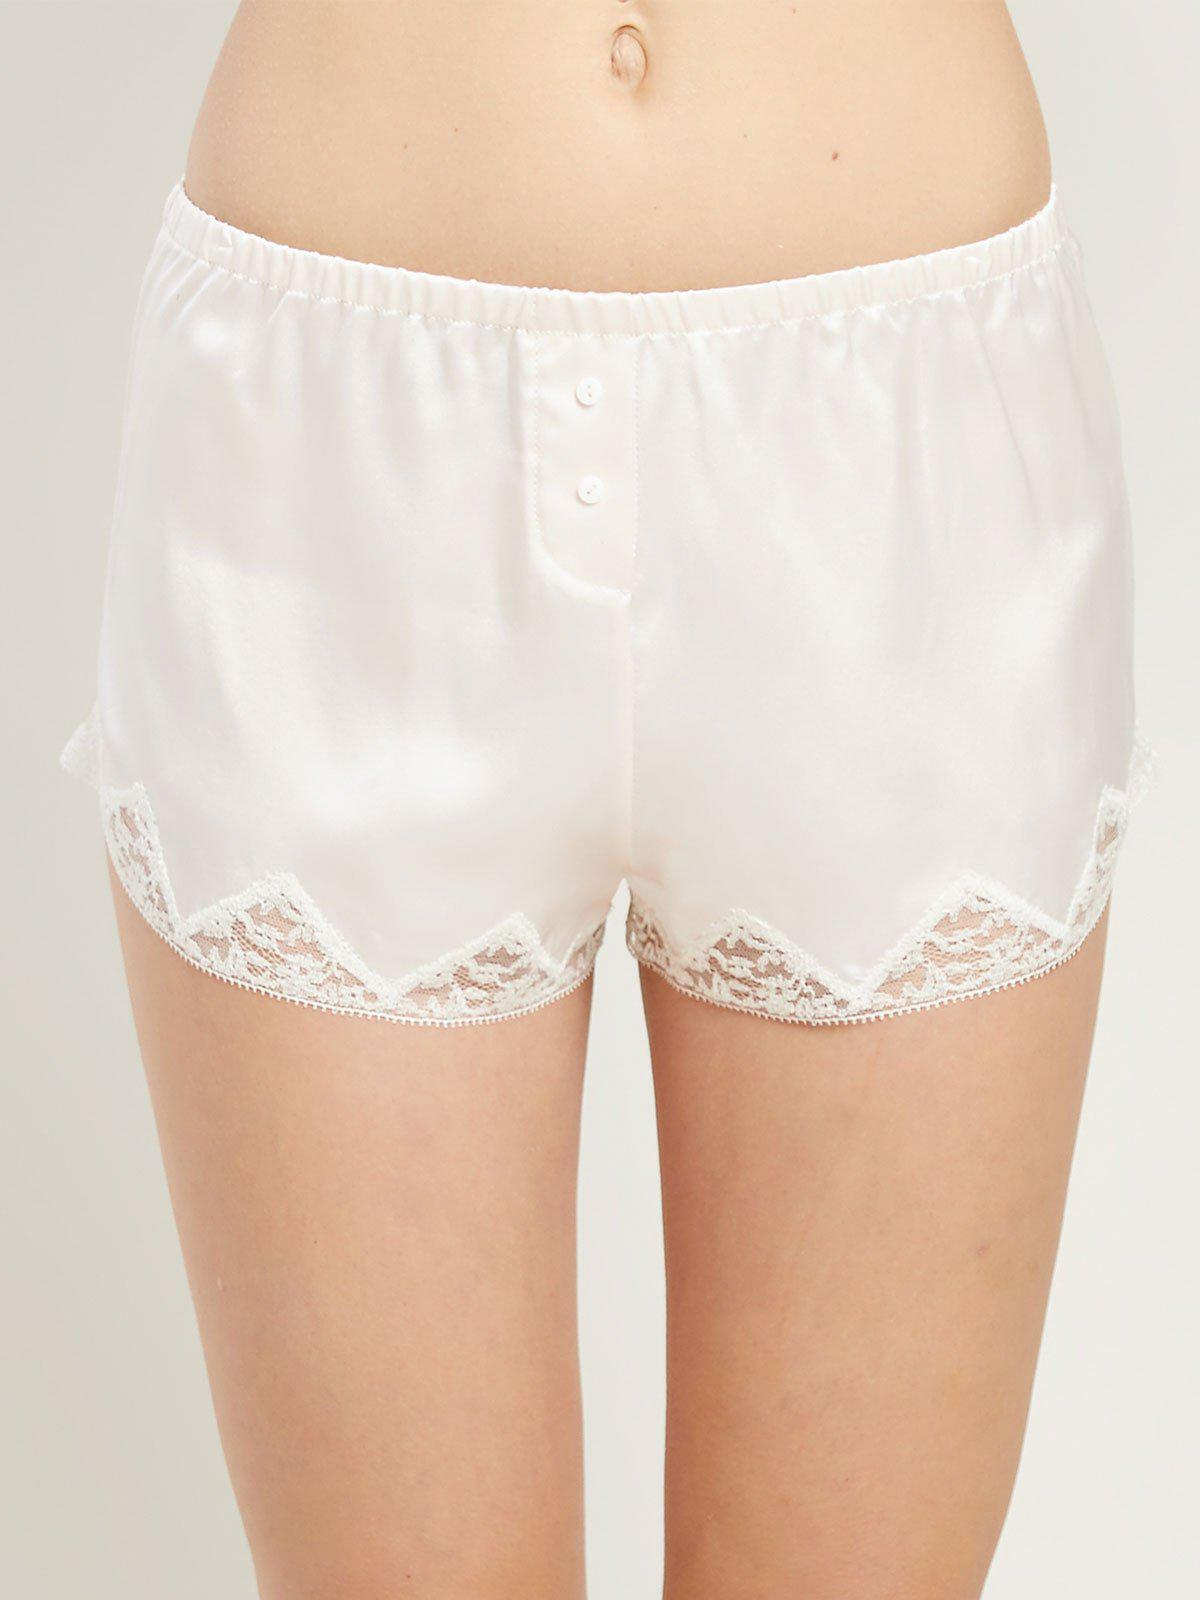 lace Josephine shorts - White Morgan Lane KrFWEO5